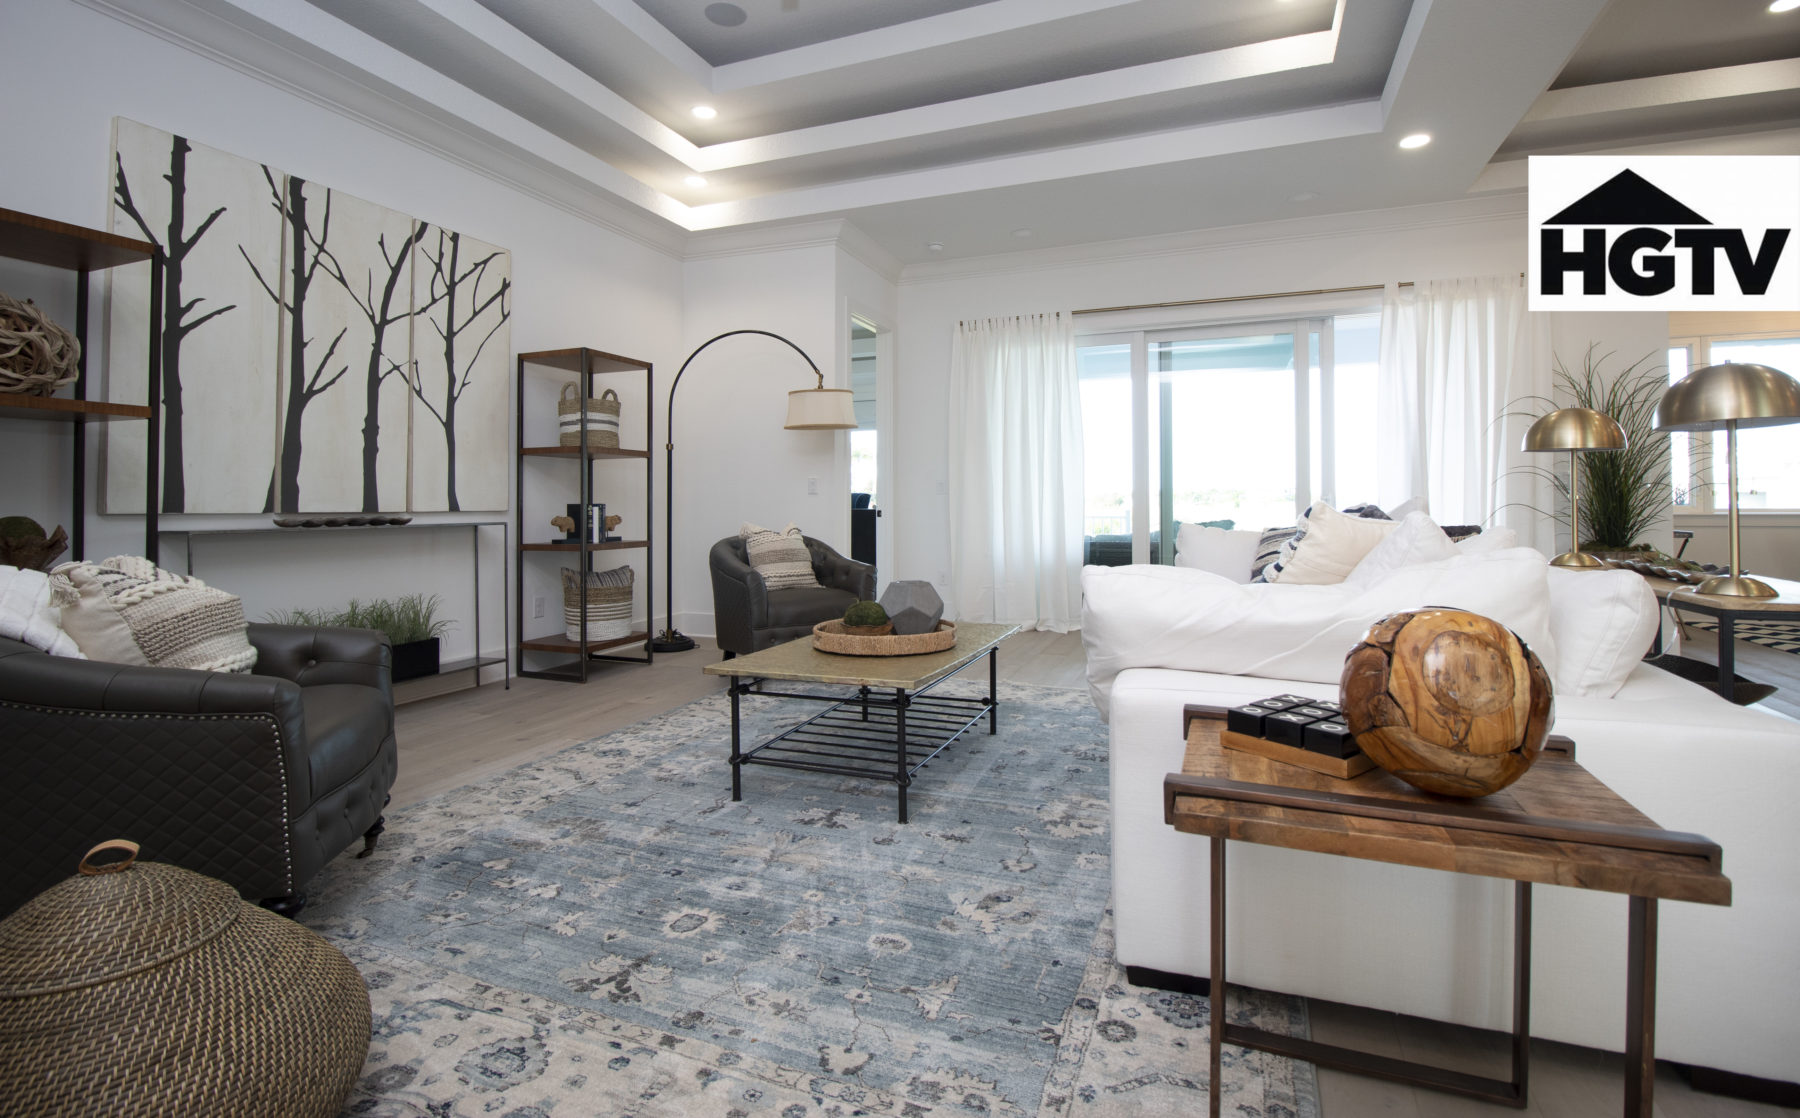 Home Fashion Trends The Impact On Staging Home Frosting